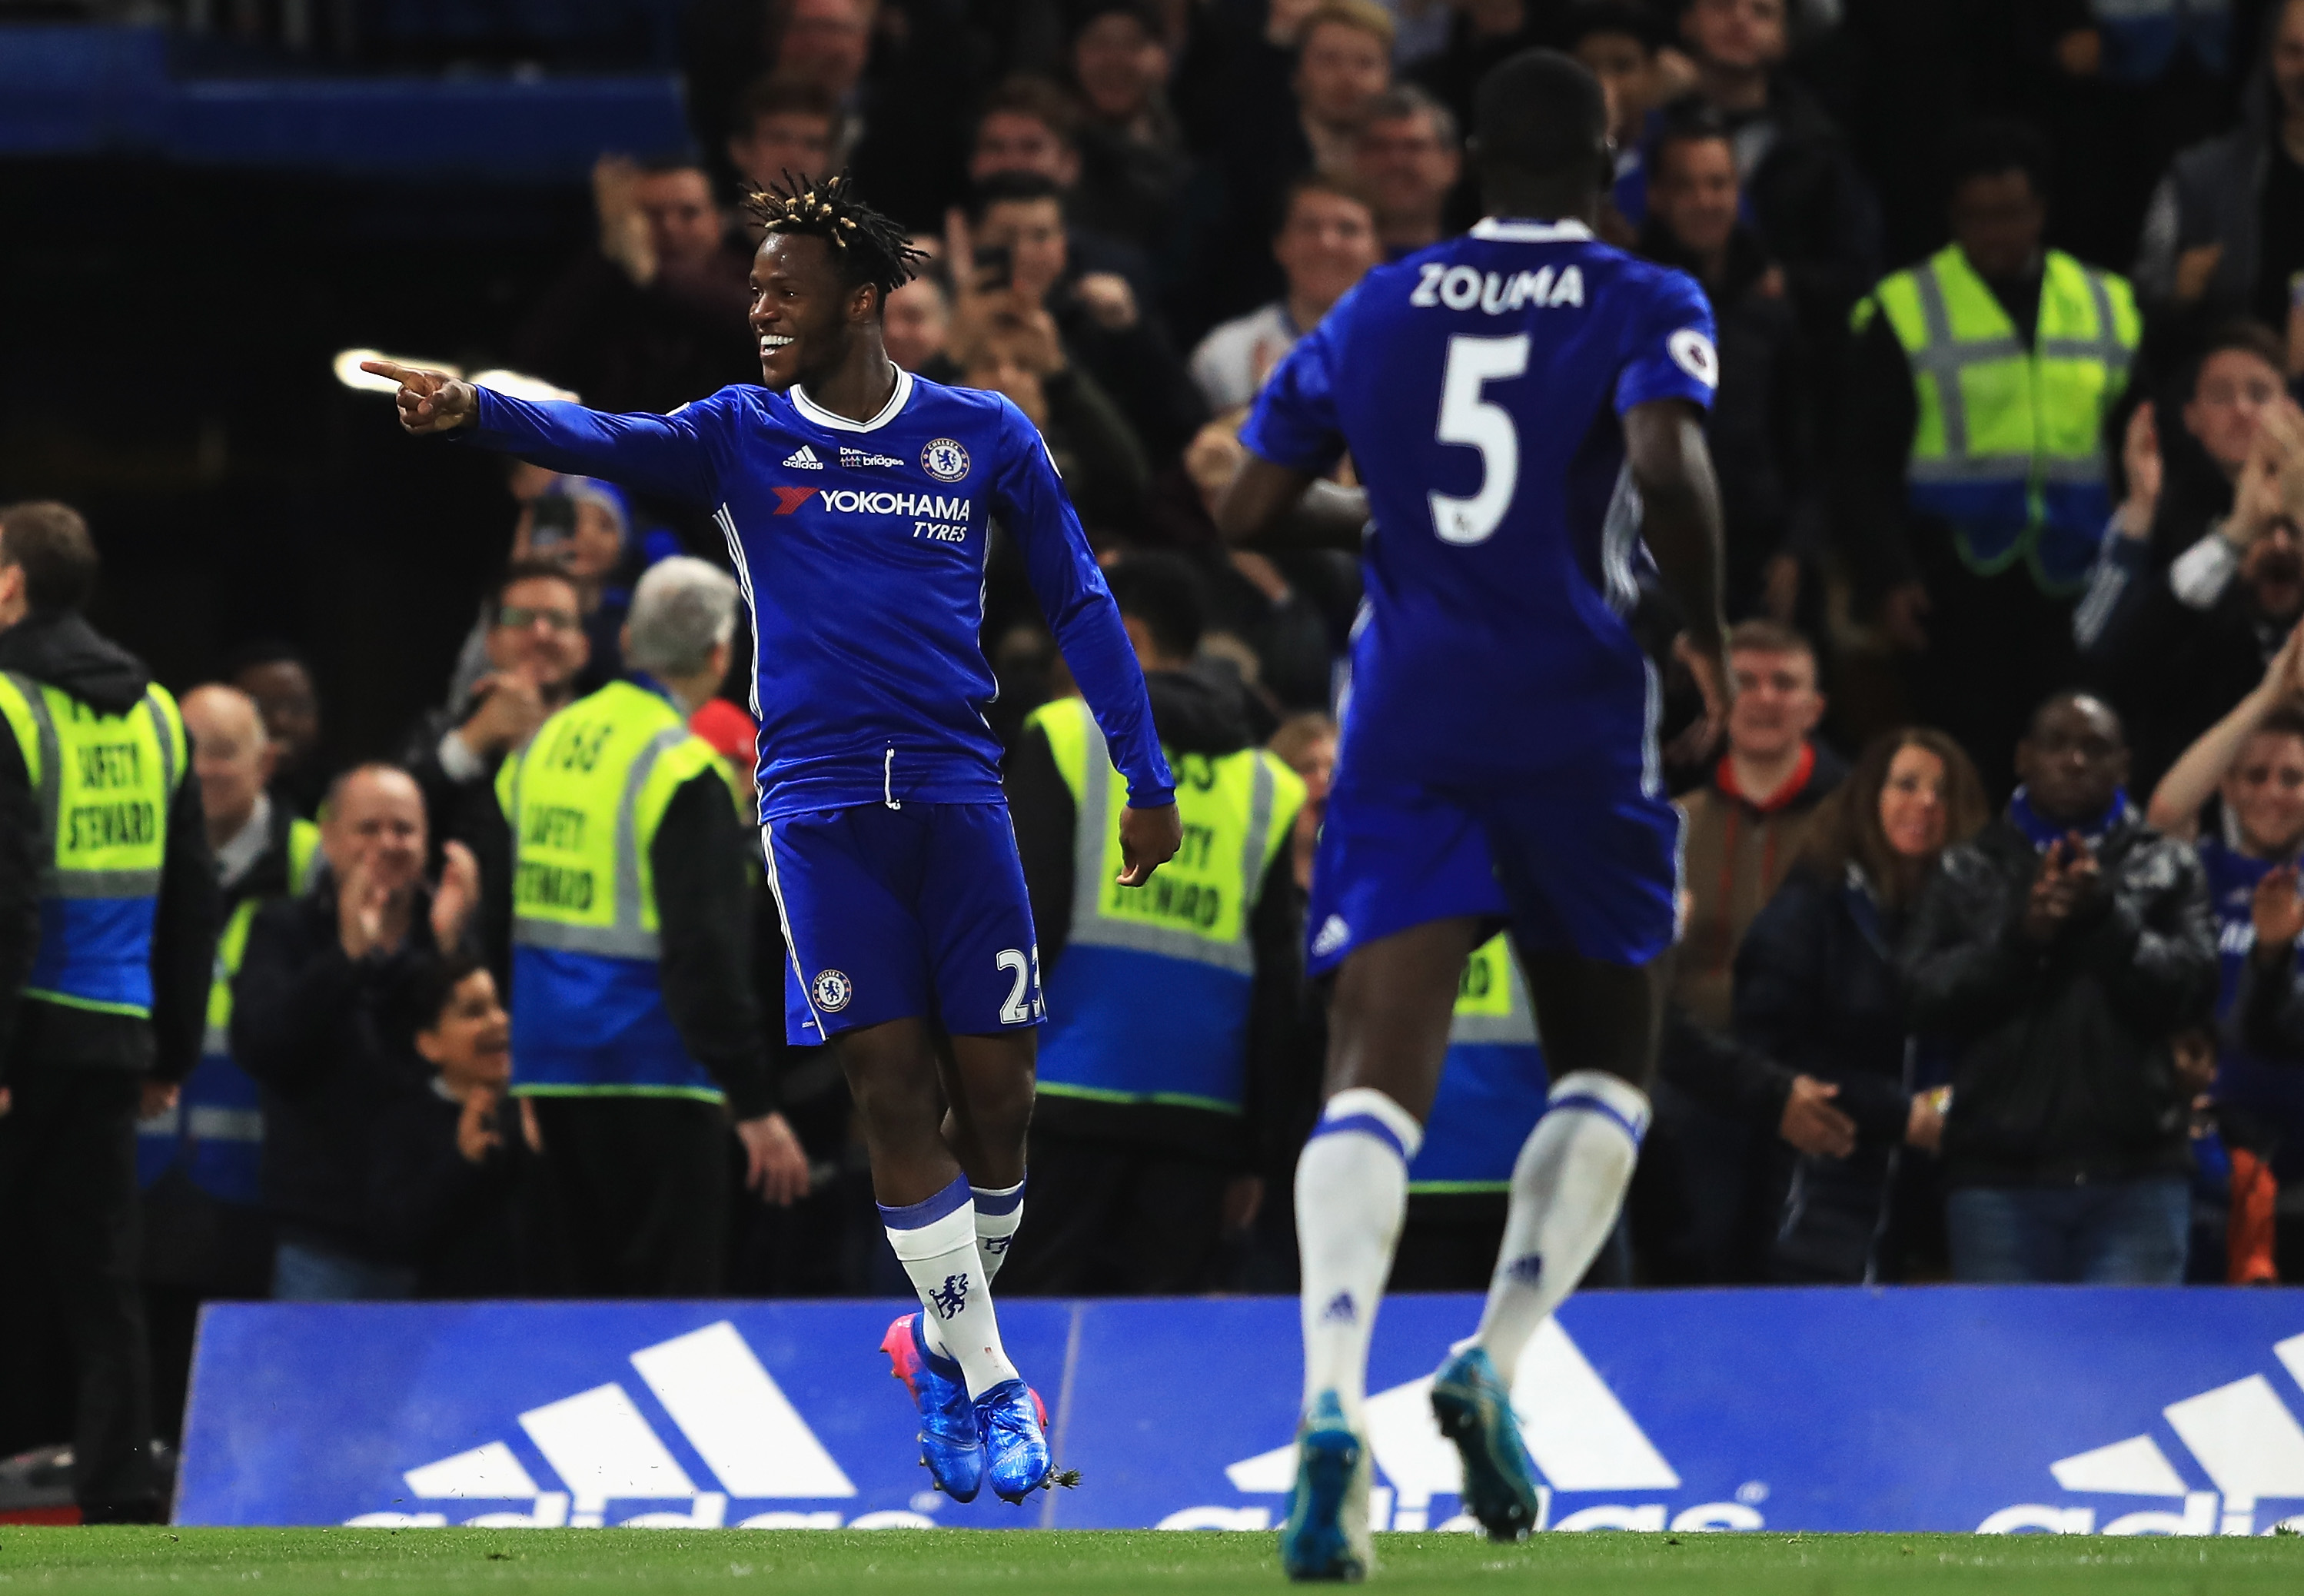 Chelsea celebrate Premier League title with 4-3 romp against Watford